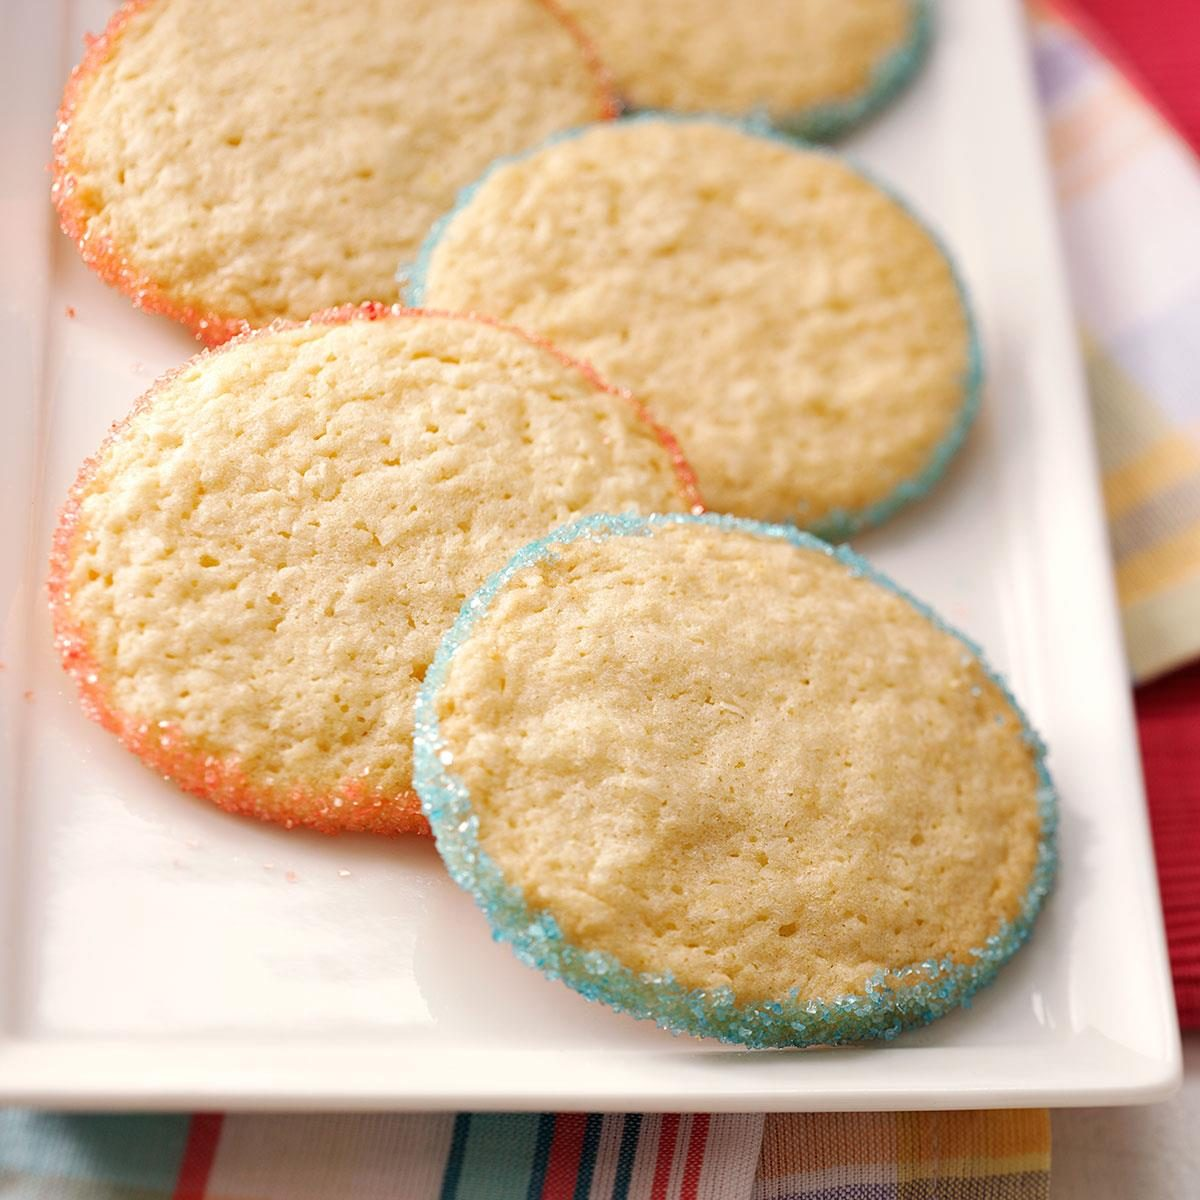 56 Slice And Bake Cookies For Easy Christmas Baking: Any Holiday Sprinkle Cookies Recipe